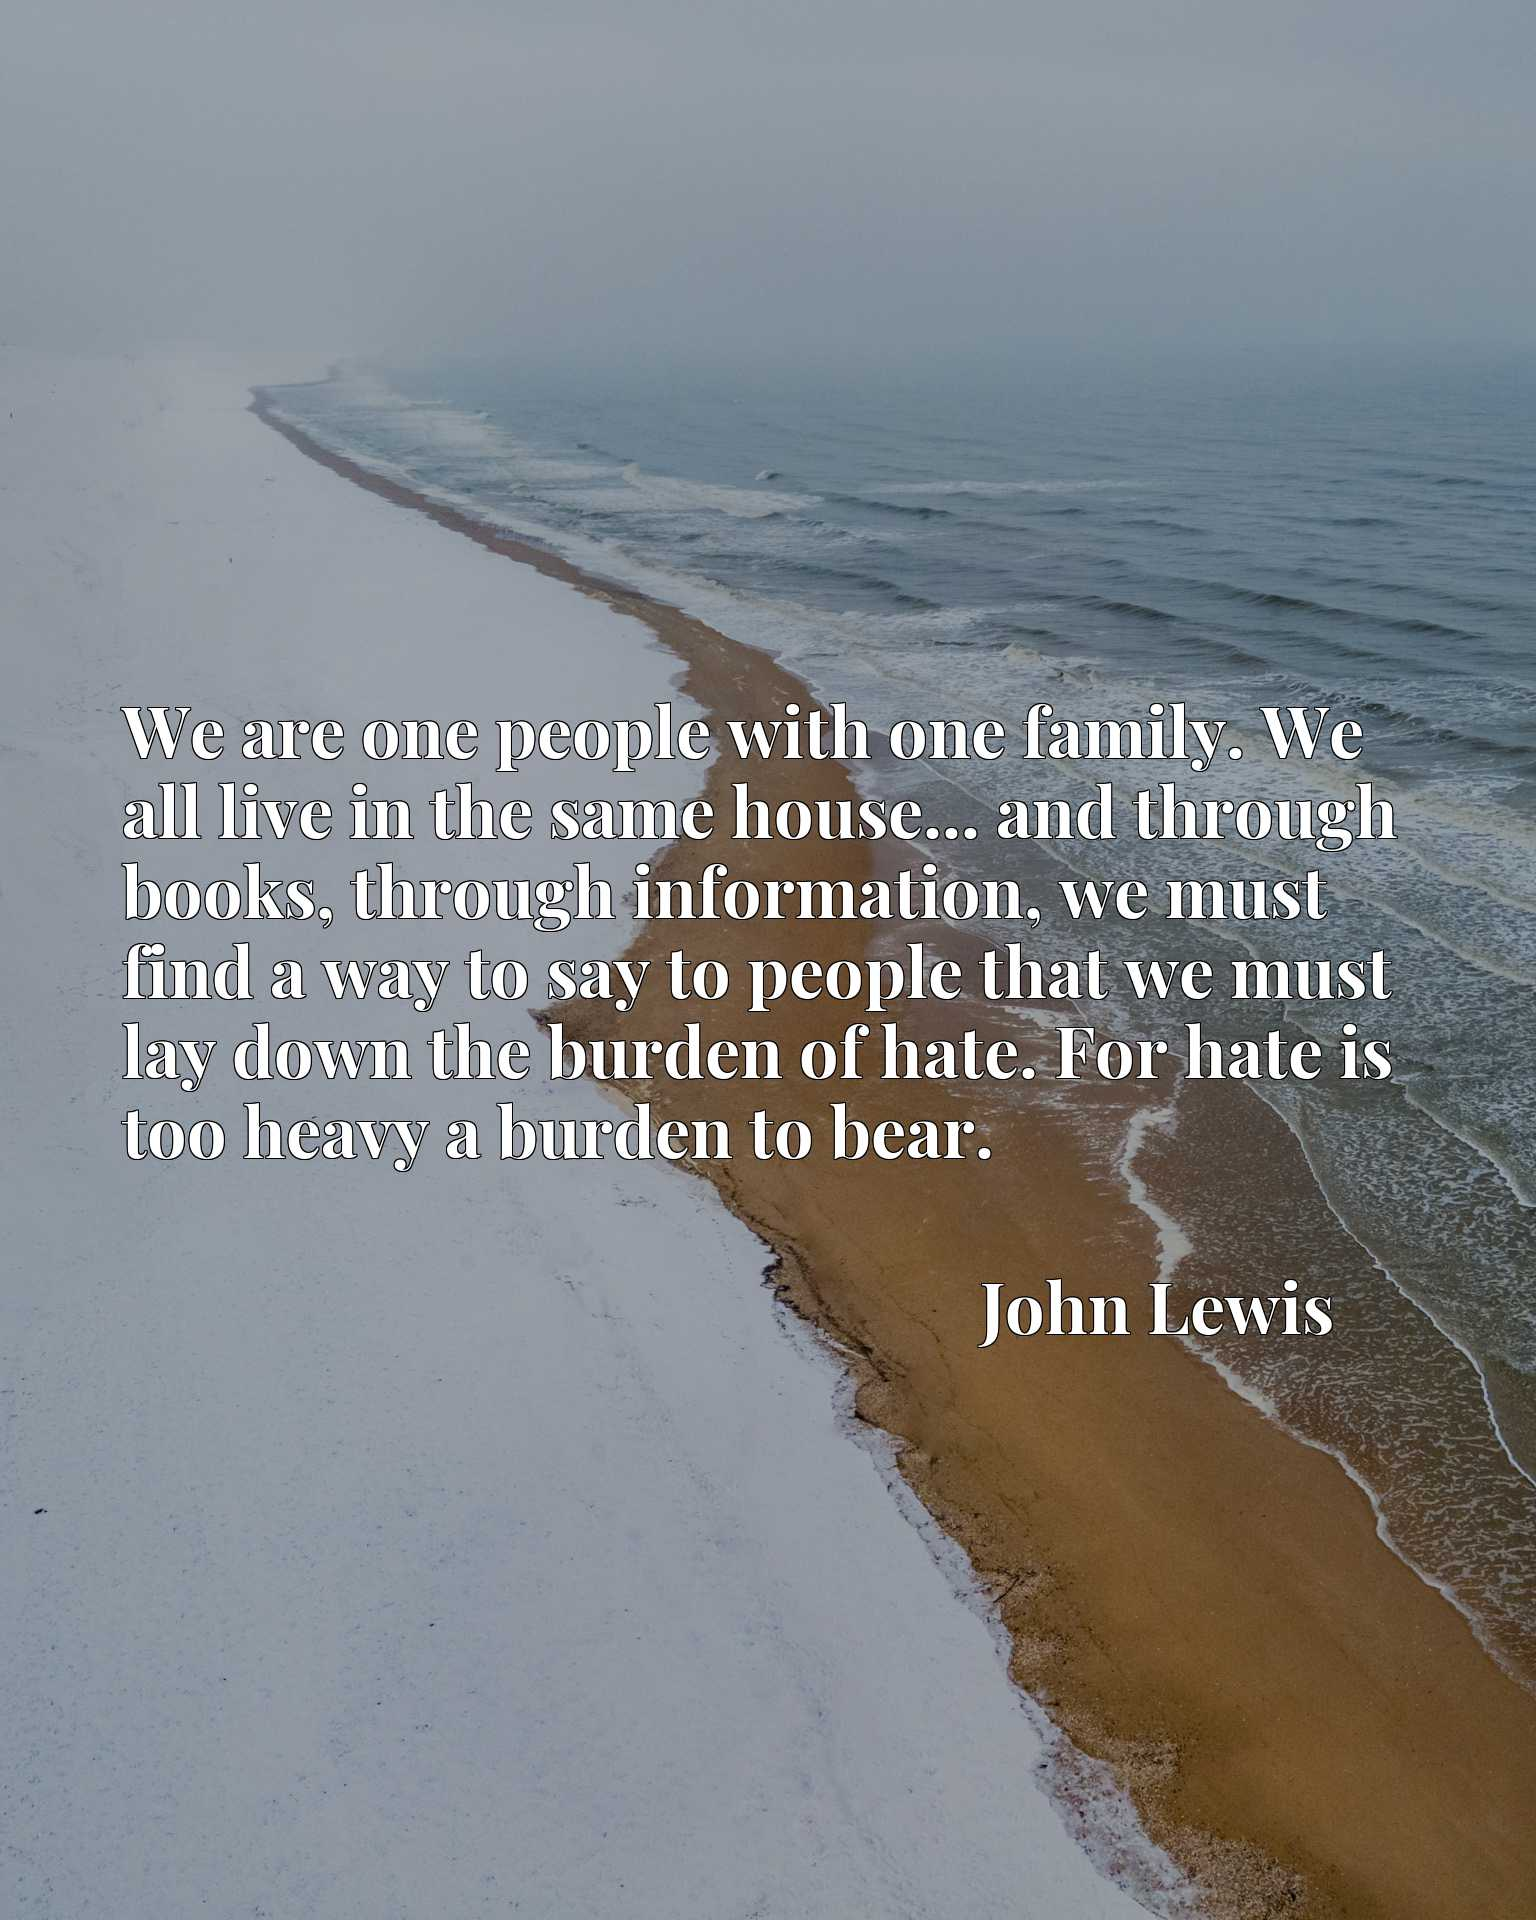 We are one people with one family. We all live in the same house... and through books, through information, we must find a way to say to people that we must lay down the burden of hate. For hate is too heavy a burden to bear.